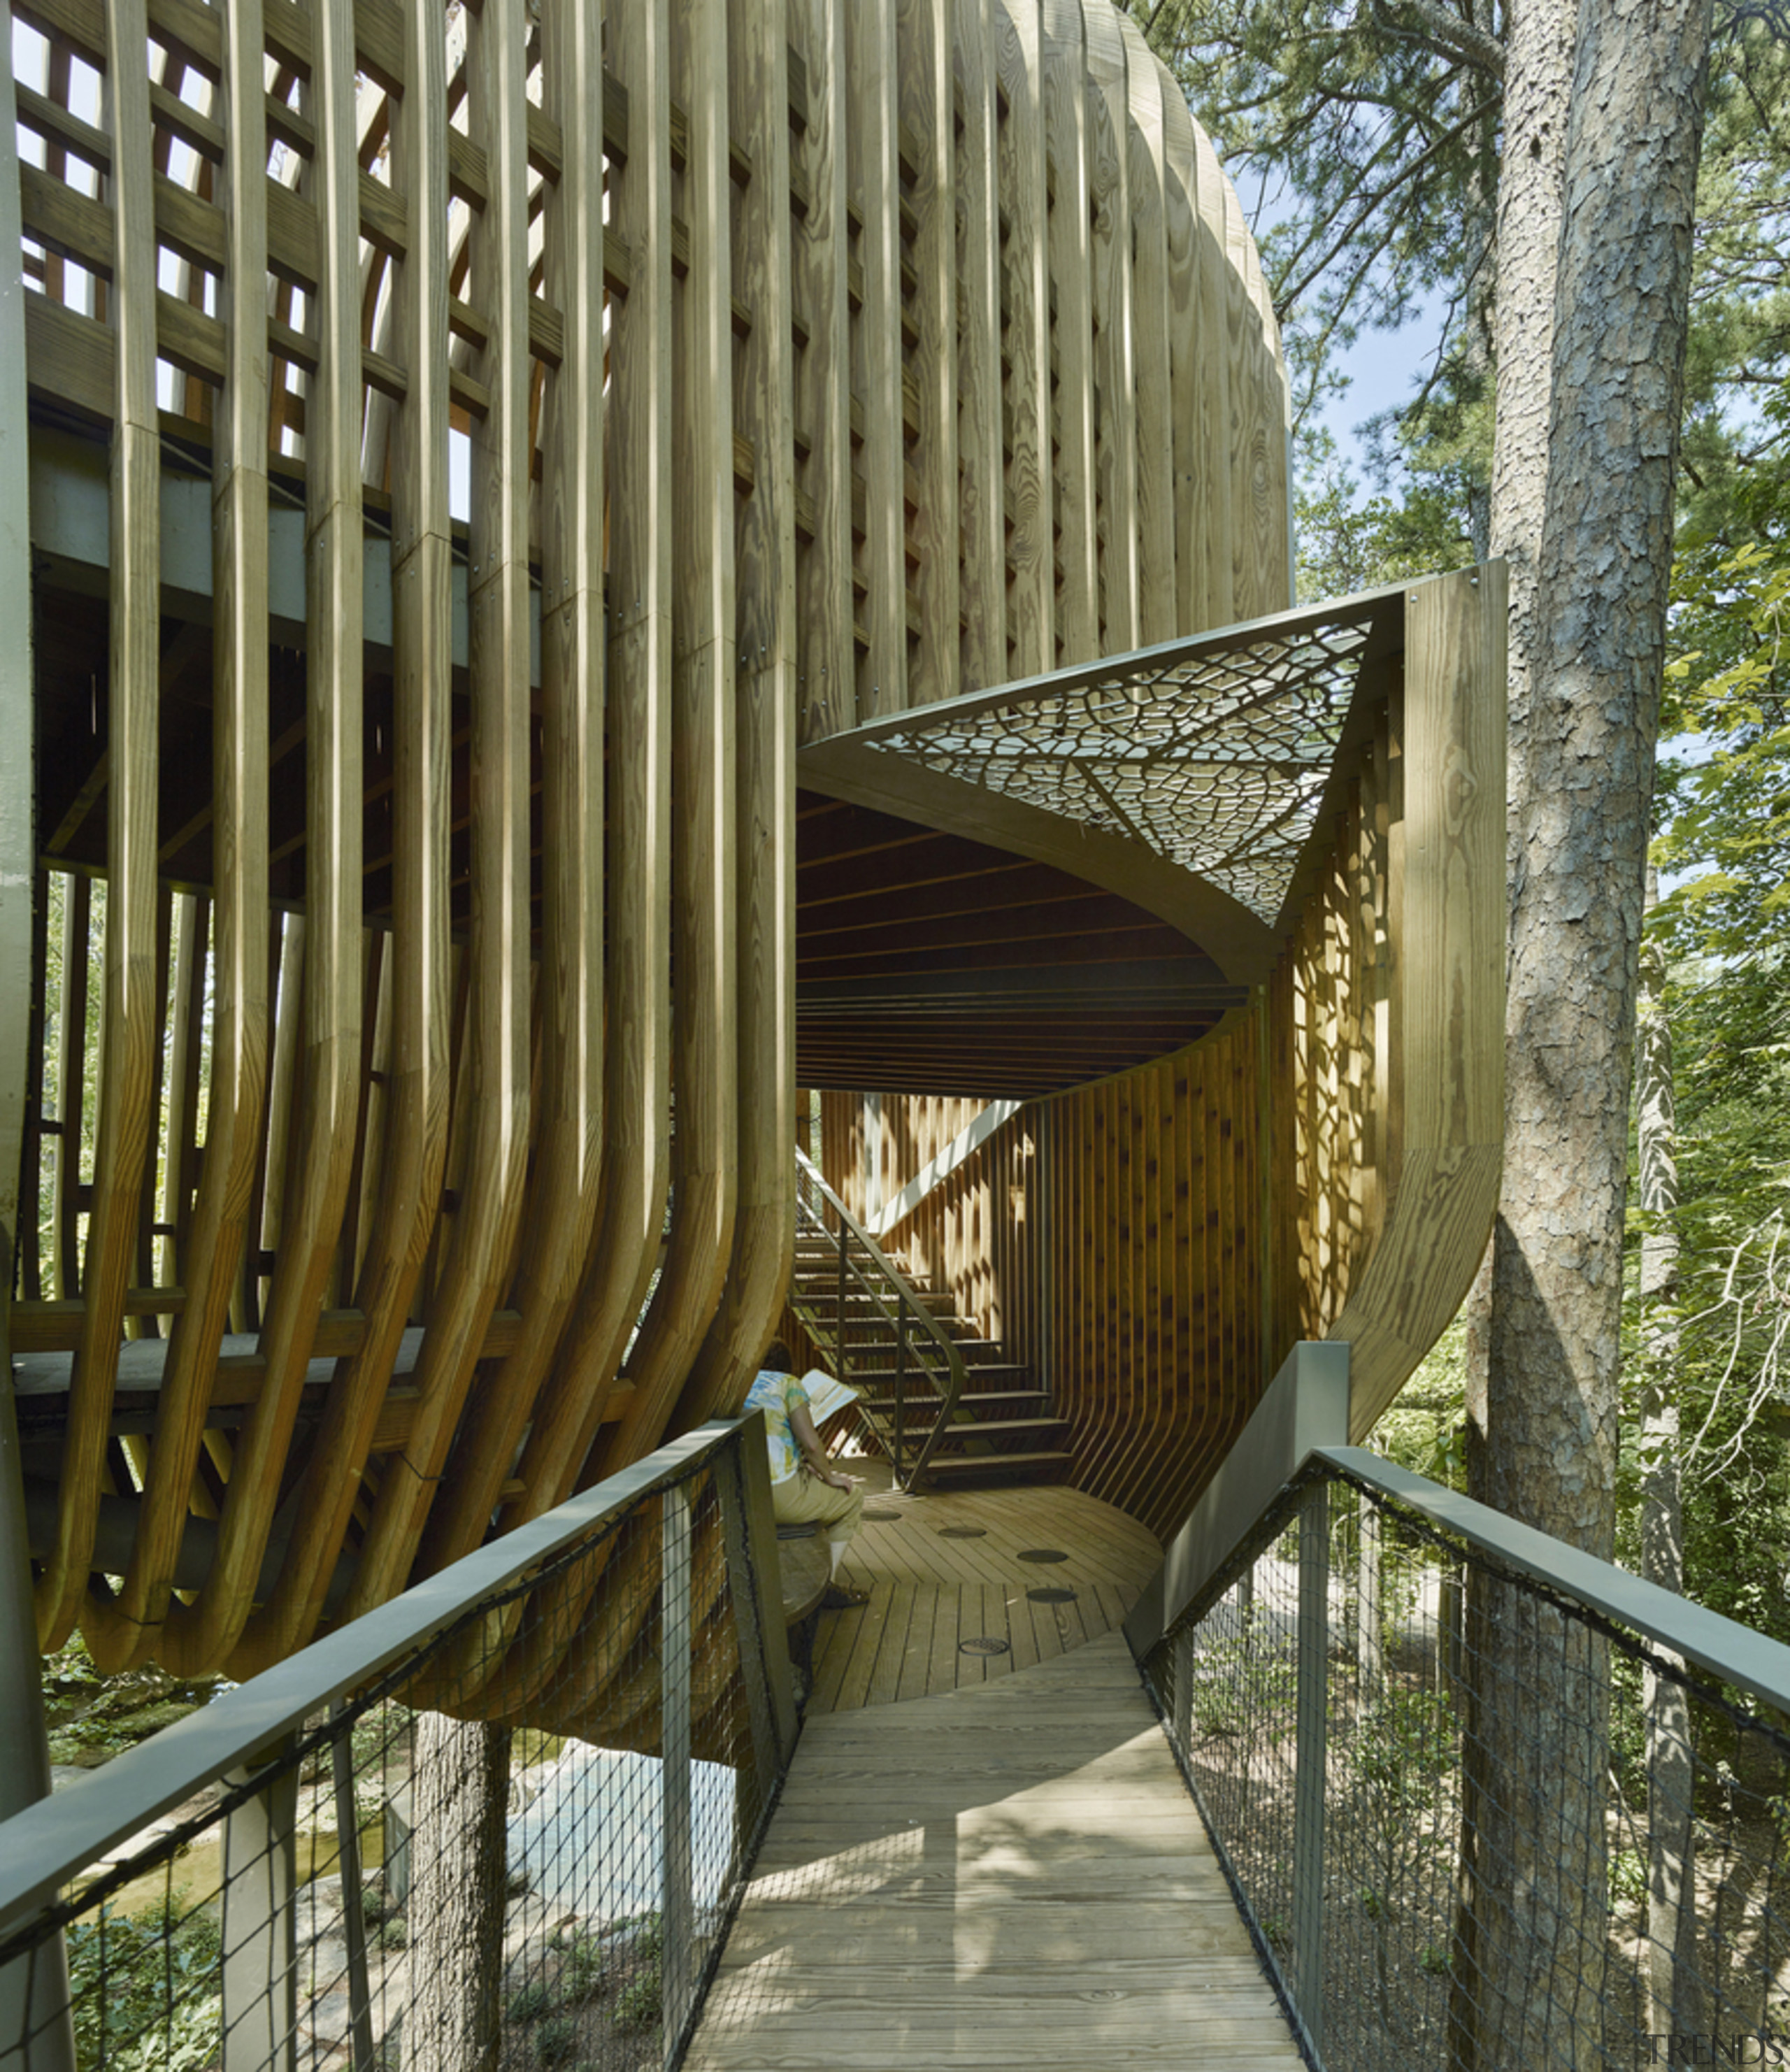 The entrance to the one-of-a-kind playground. architecture, botany, bridge, plant, tree, walkway, wood, brown